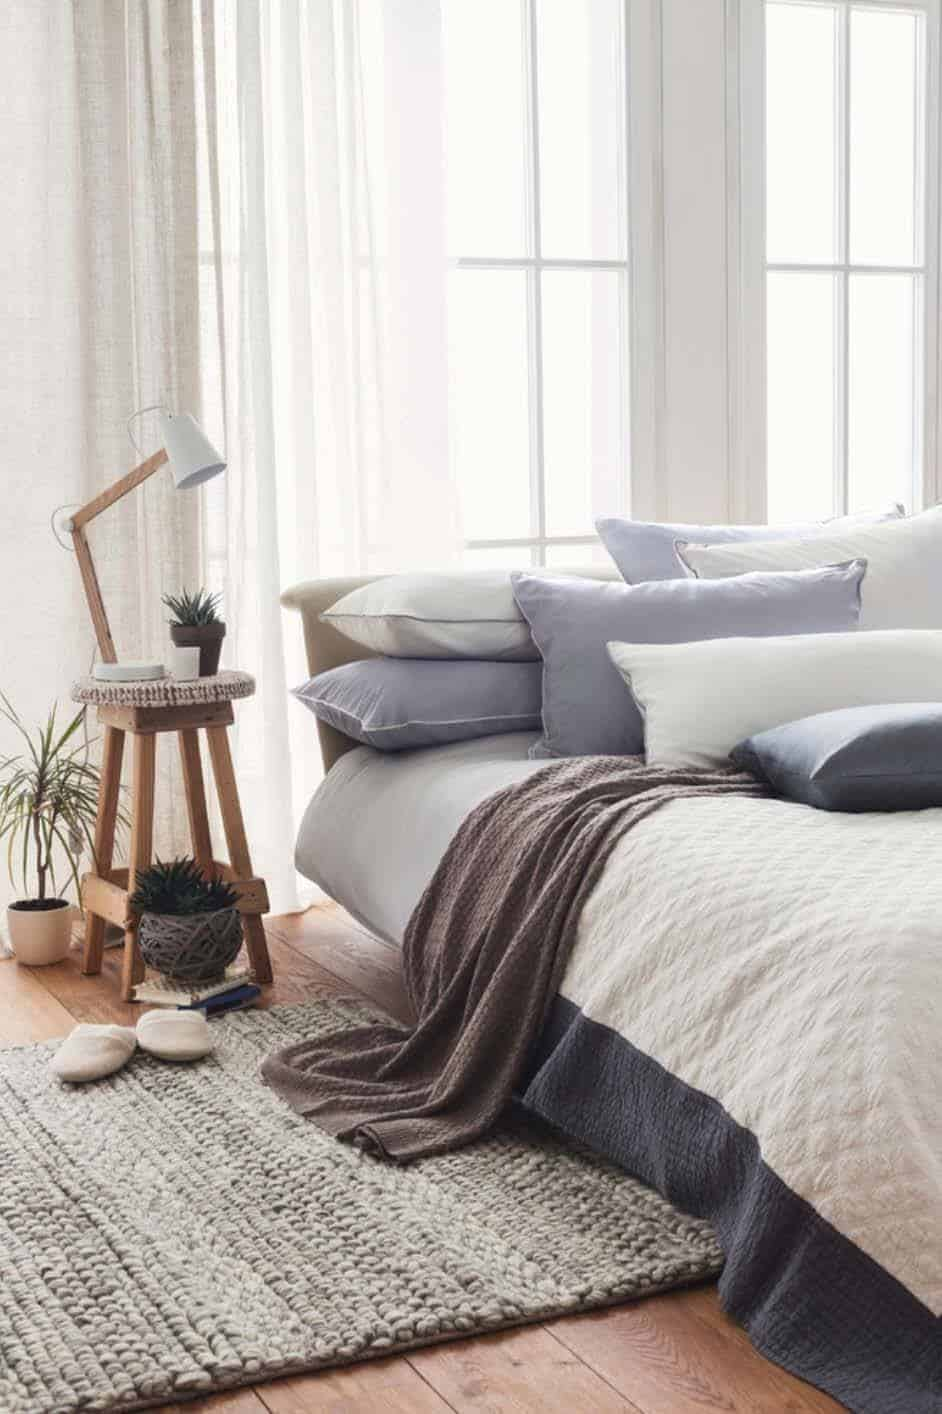 Scandinavian Bedroom Ideas-40-1 Kindesign